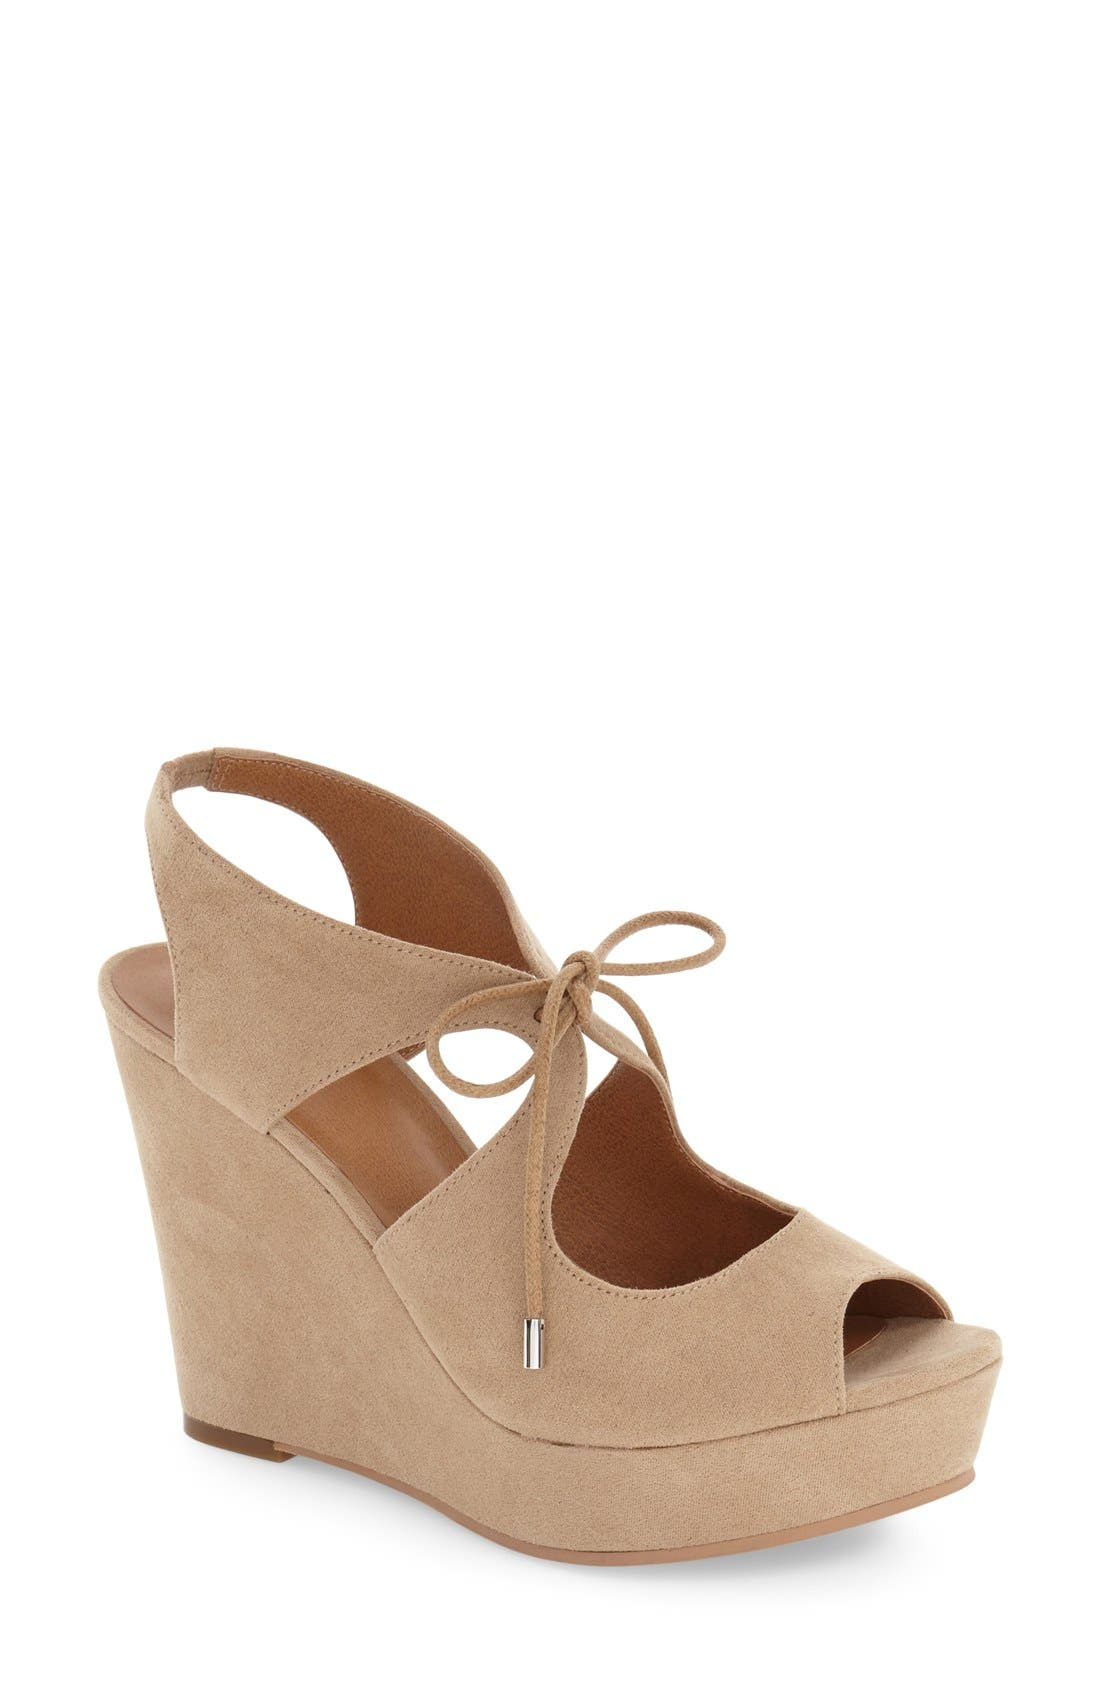 BP. 'Solar' Platform Wedge Sandal